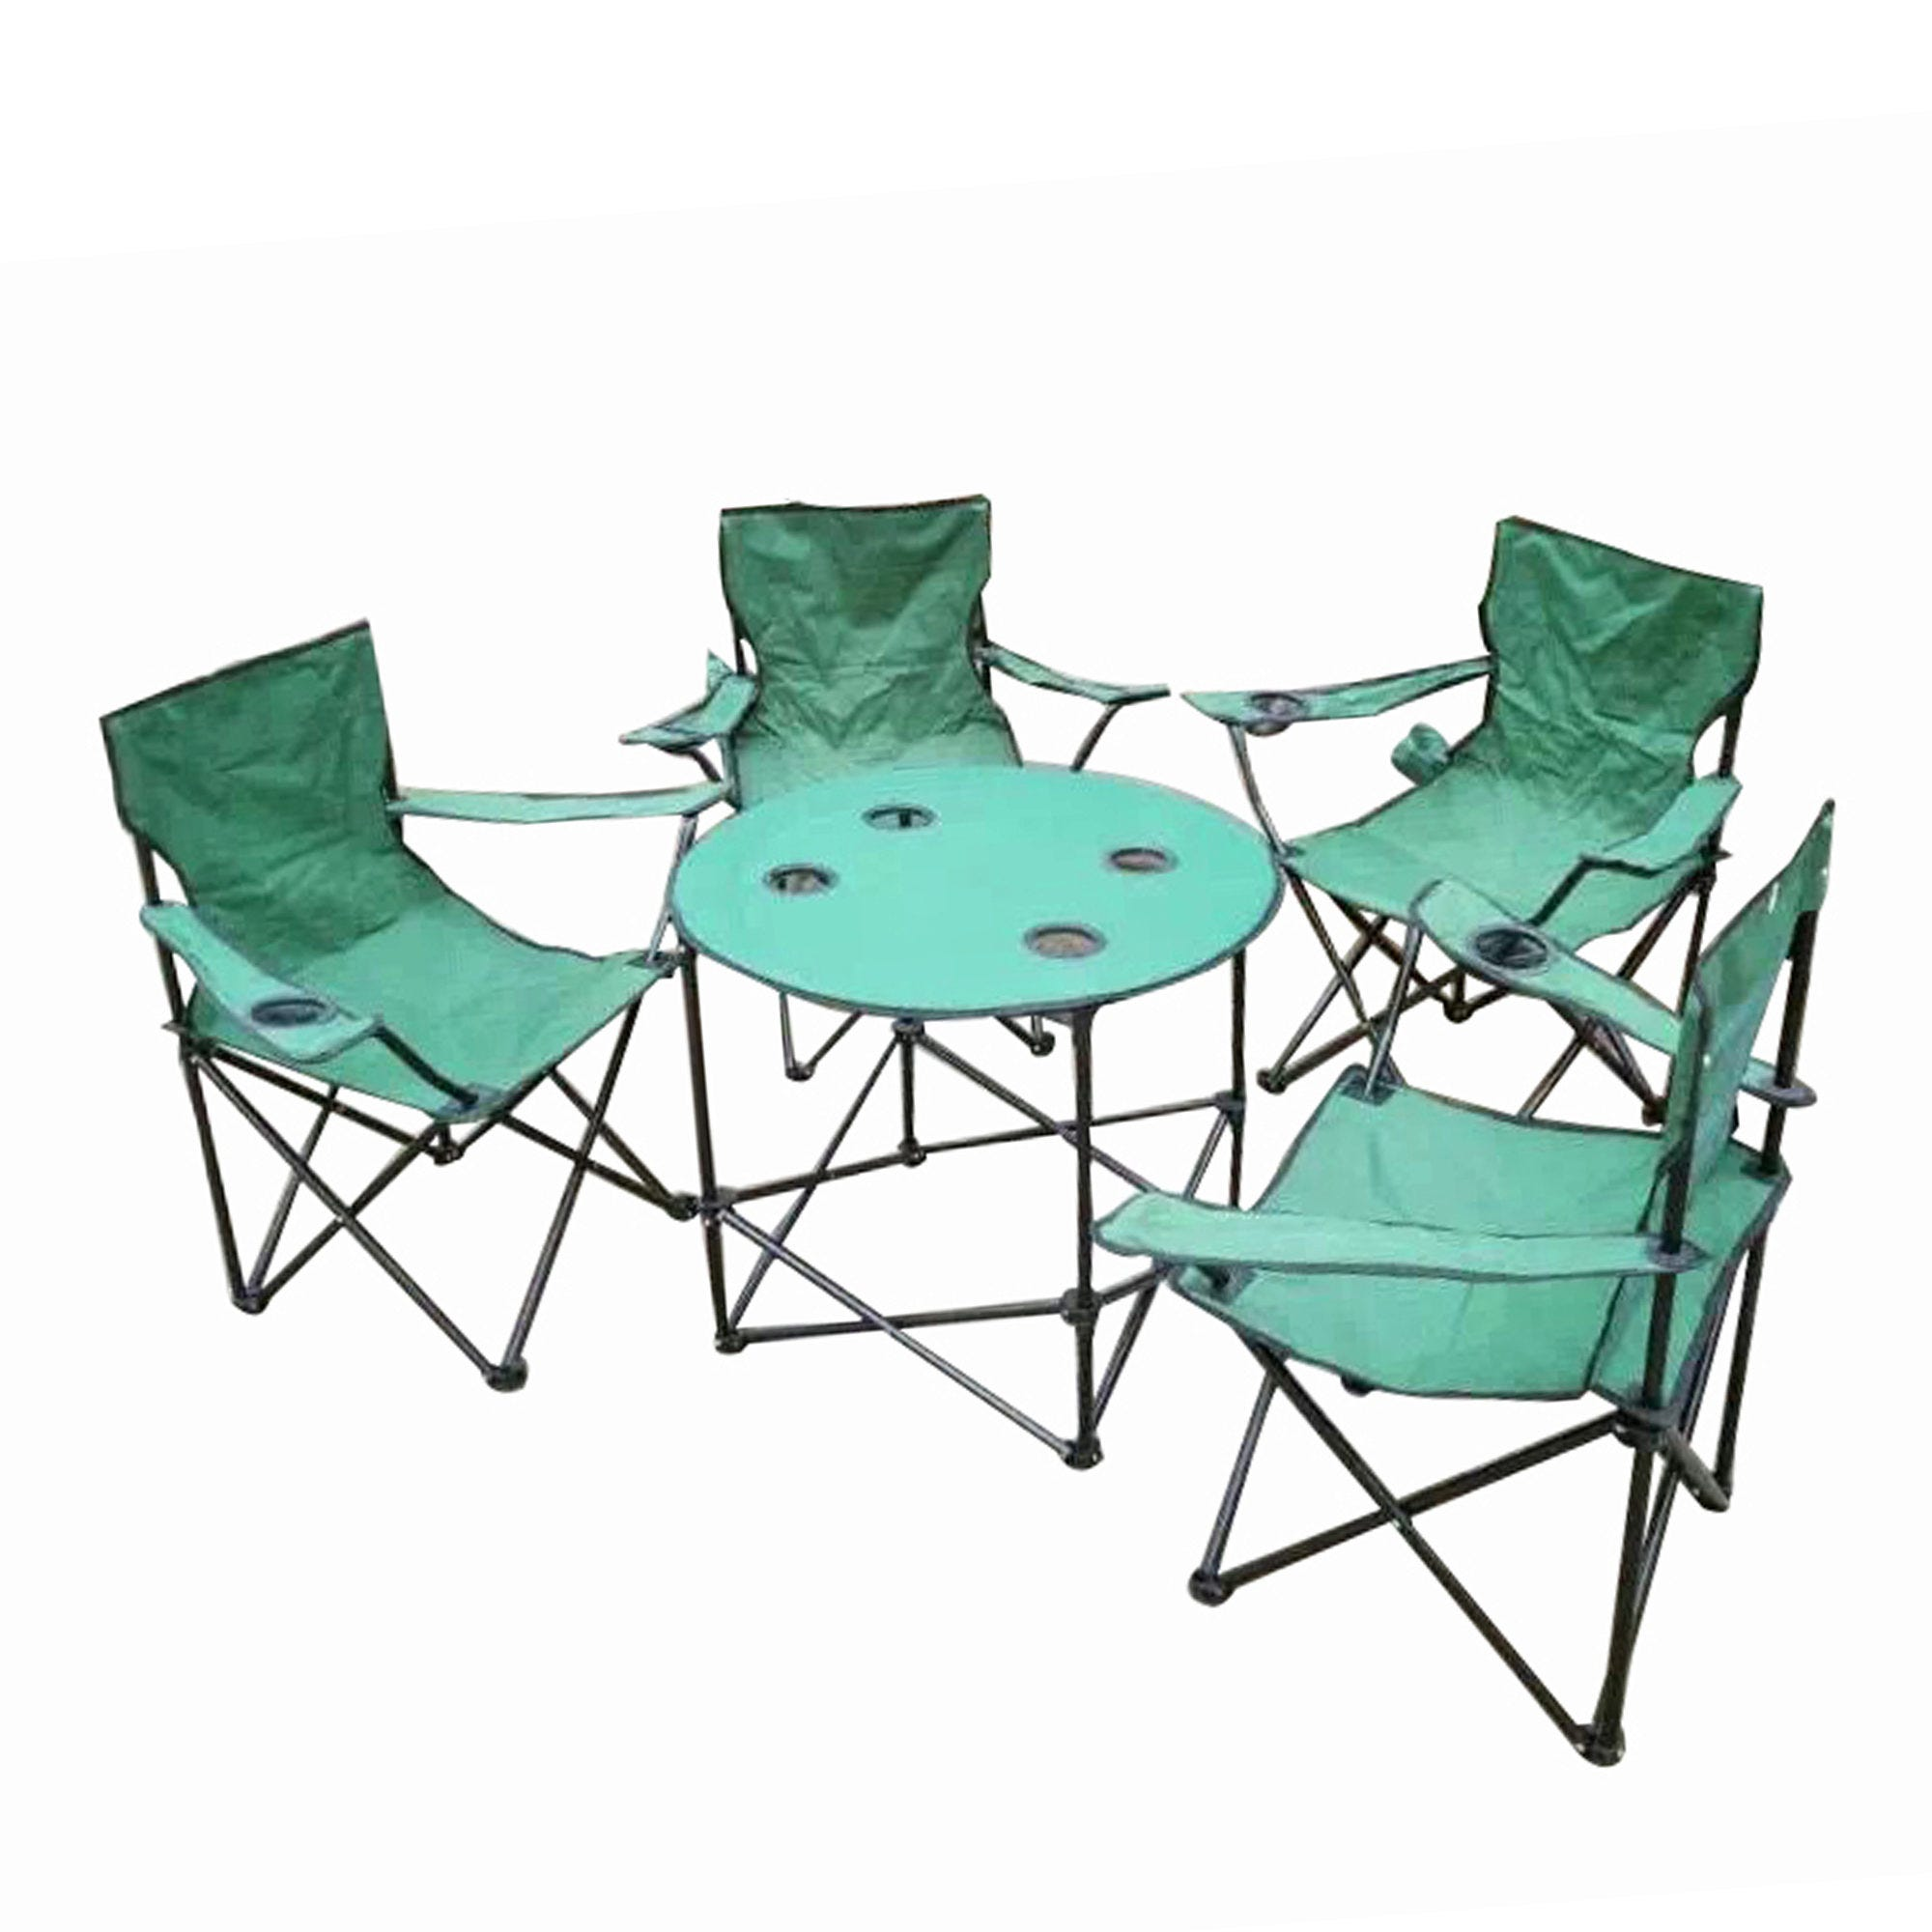 Folding Camping Table & Chairs Set with Carry Bag- Qty 1